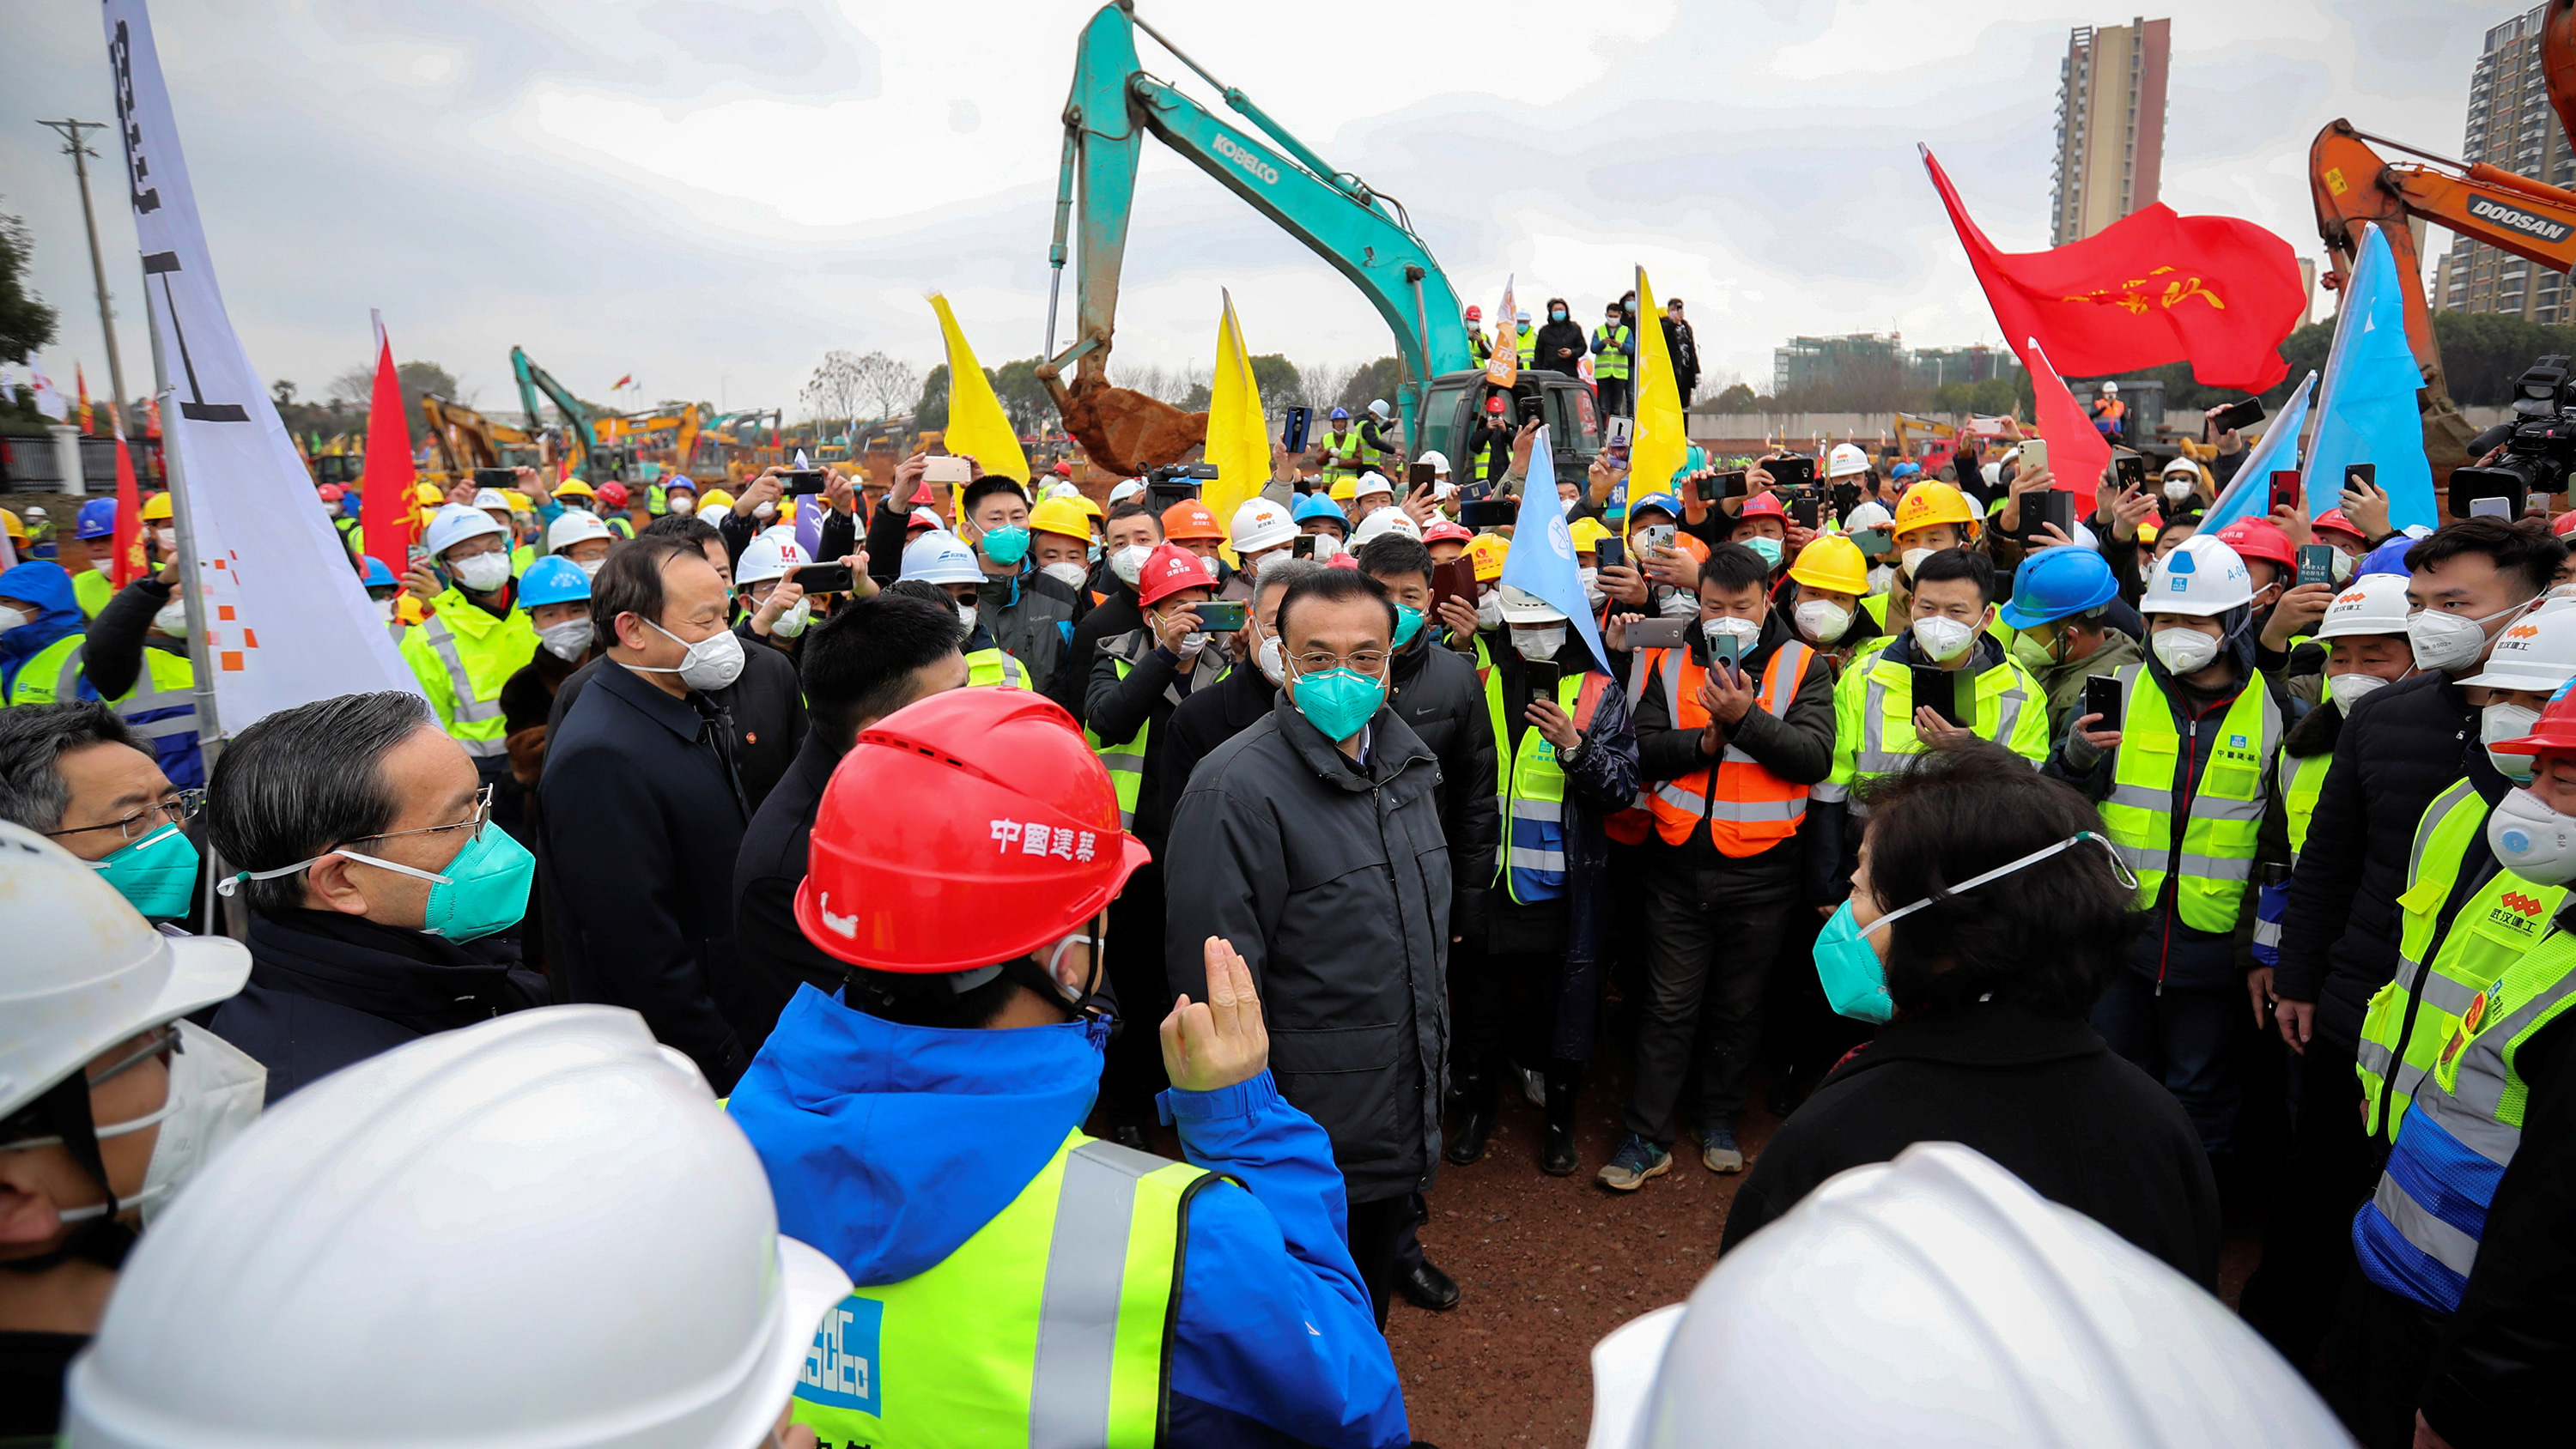 Photo shows the leader surrounded by construction workers and other people at the construction site with huge cranes looming in the background.